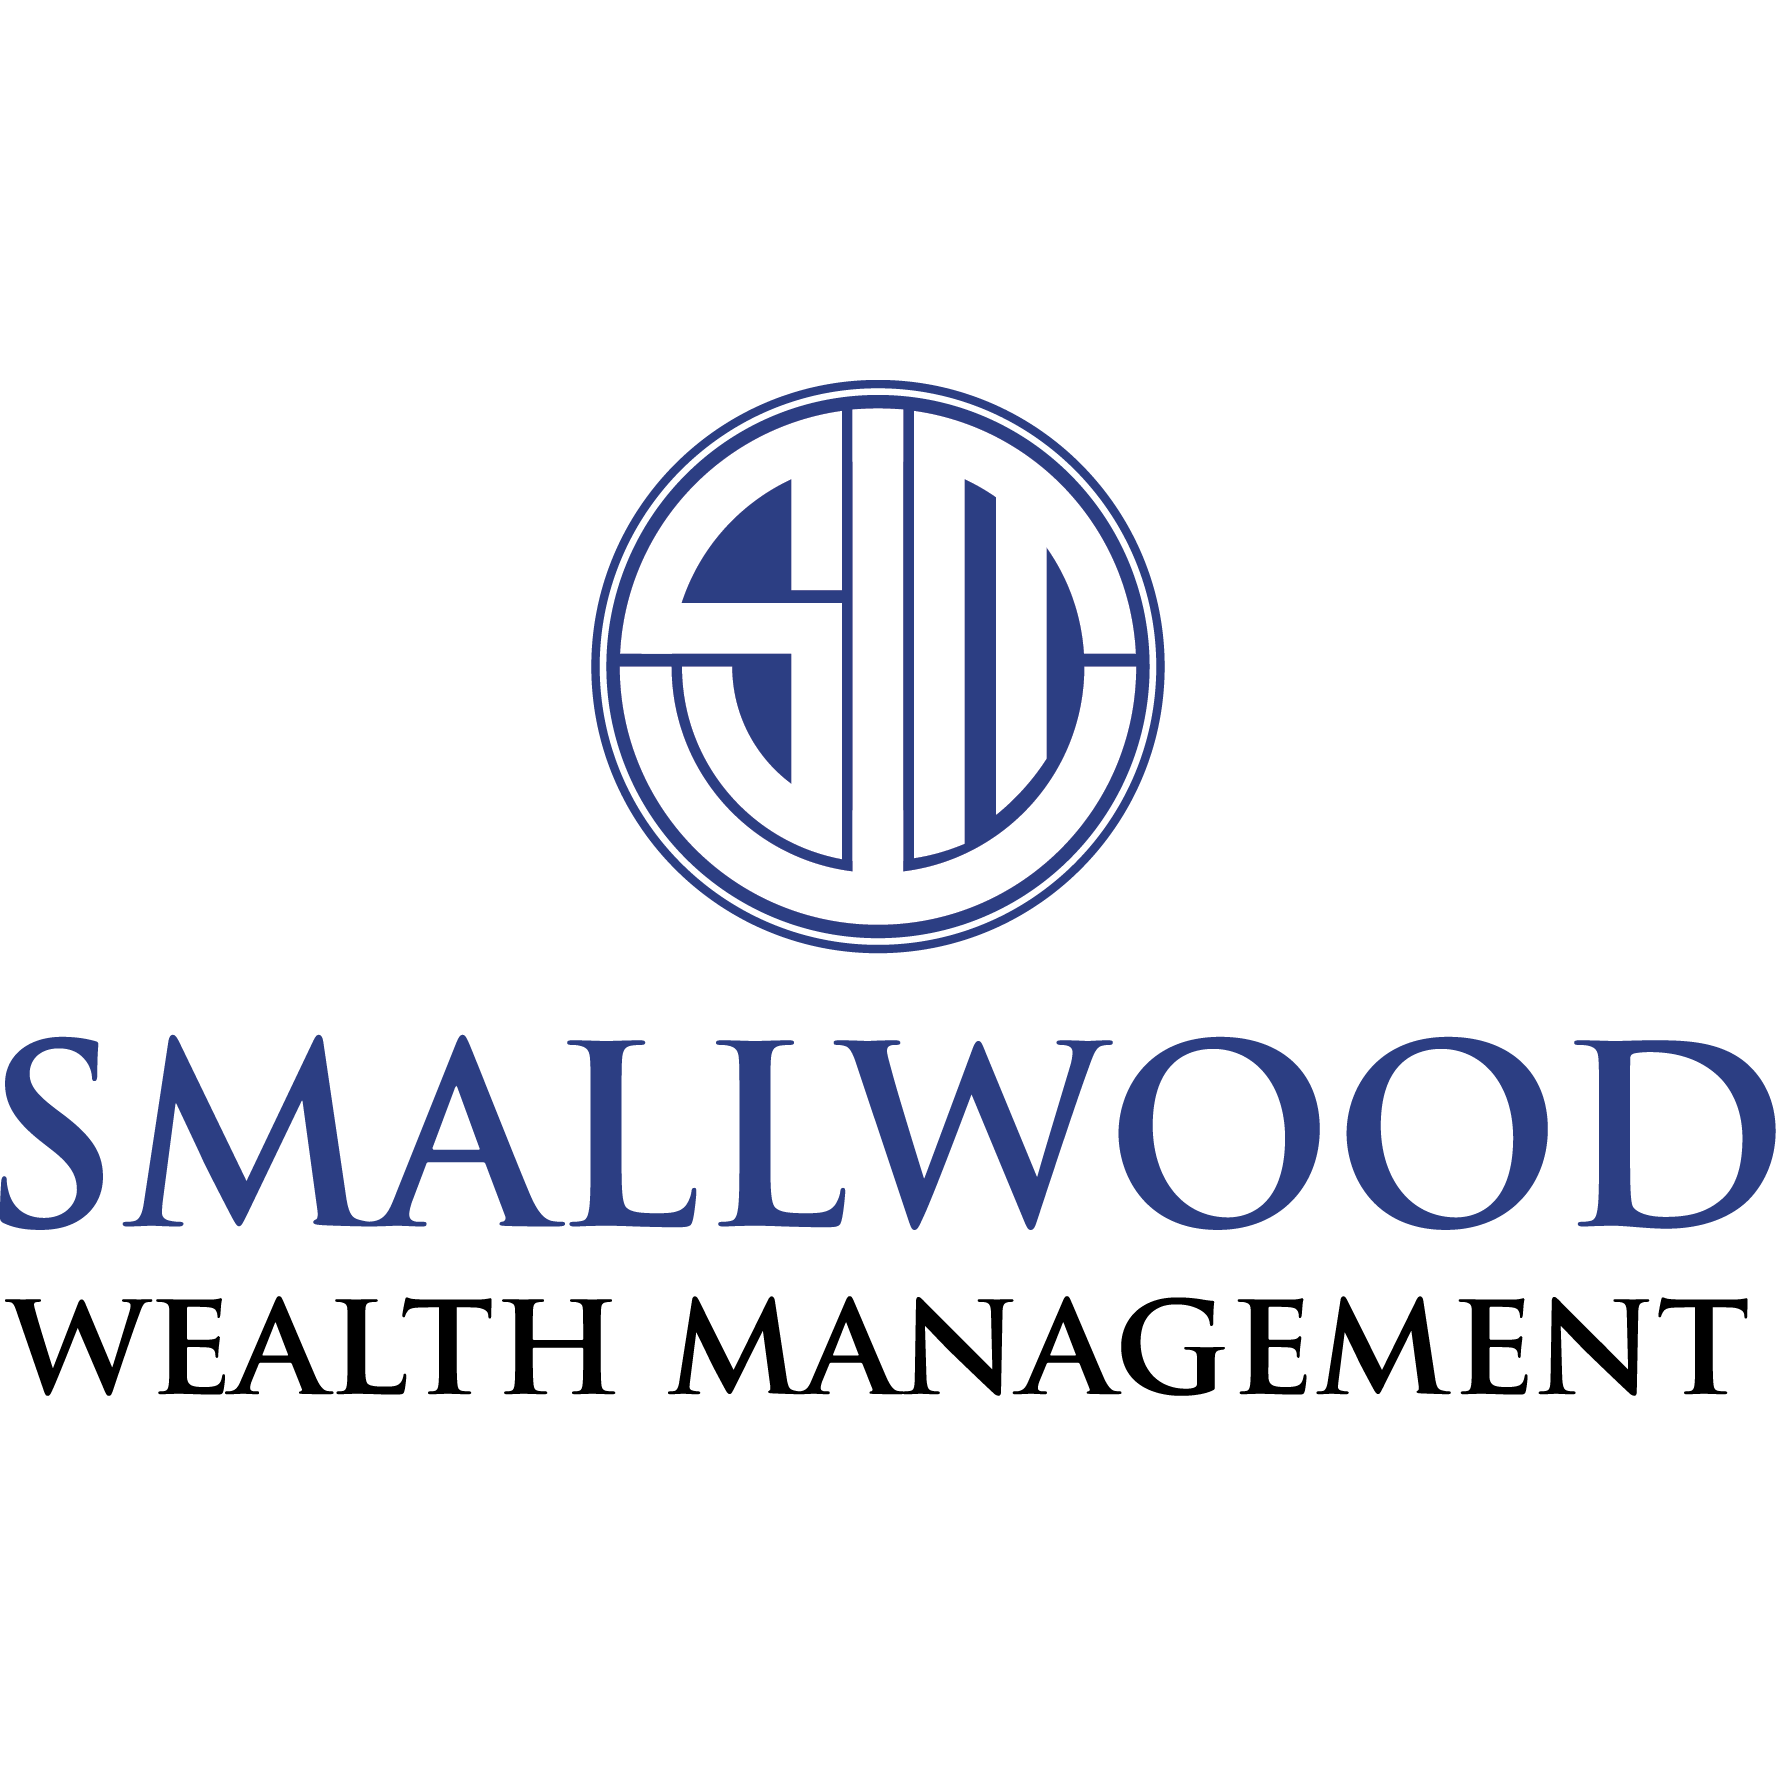 Smallwood Wealth Management image 2